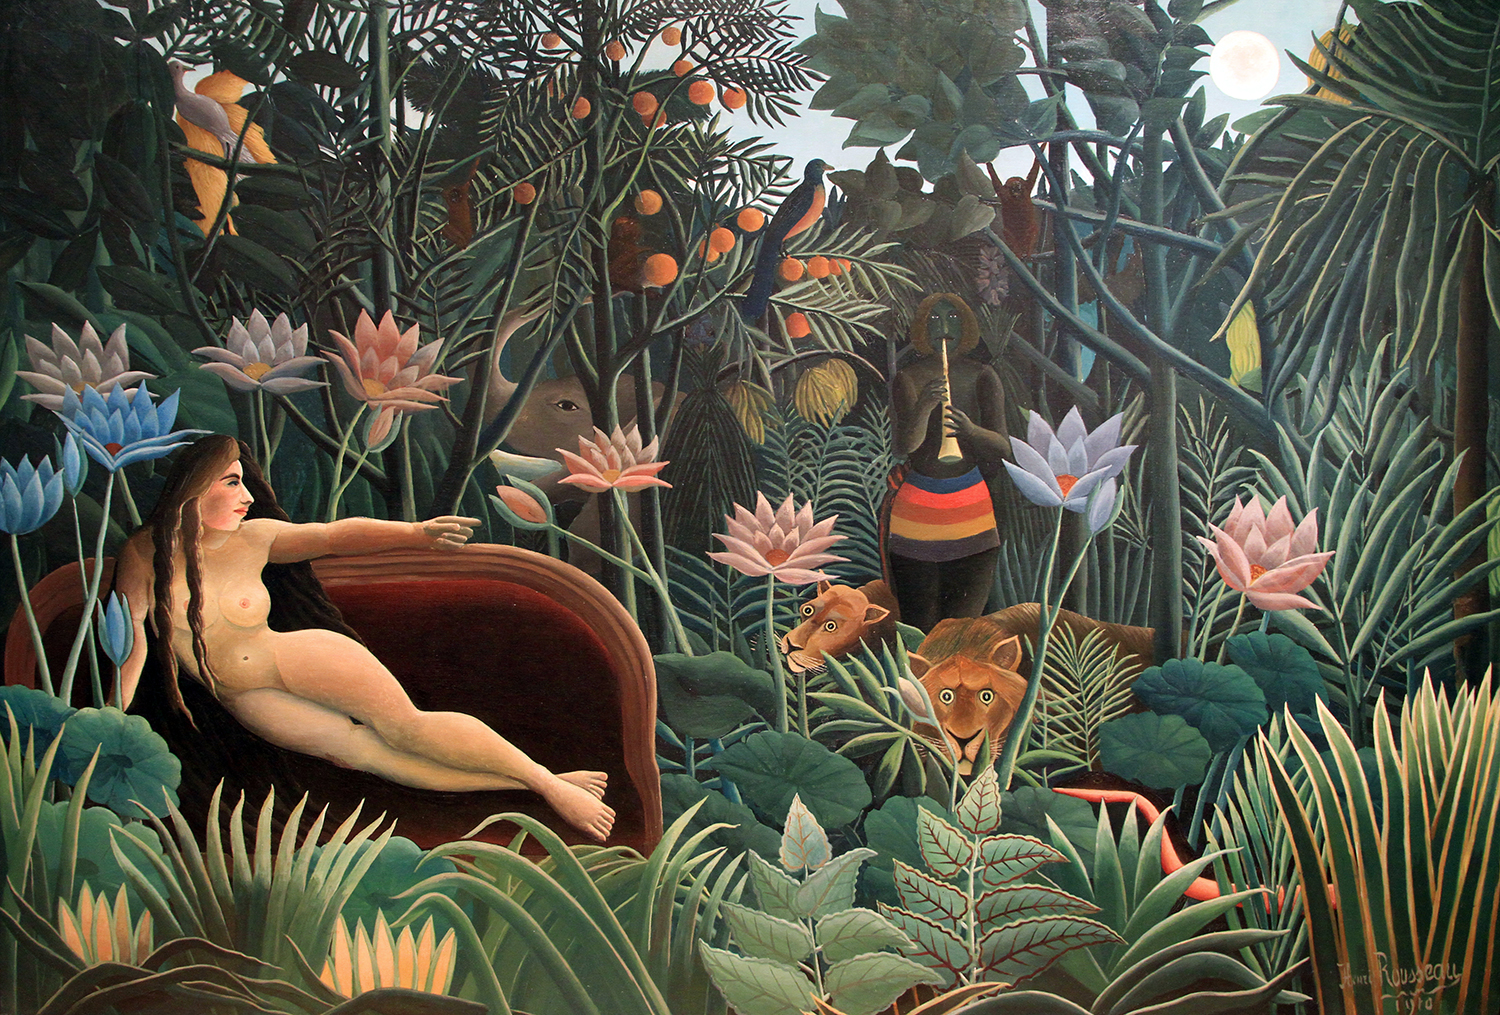 The Dream, by Henri Rousseau